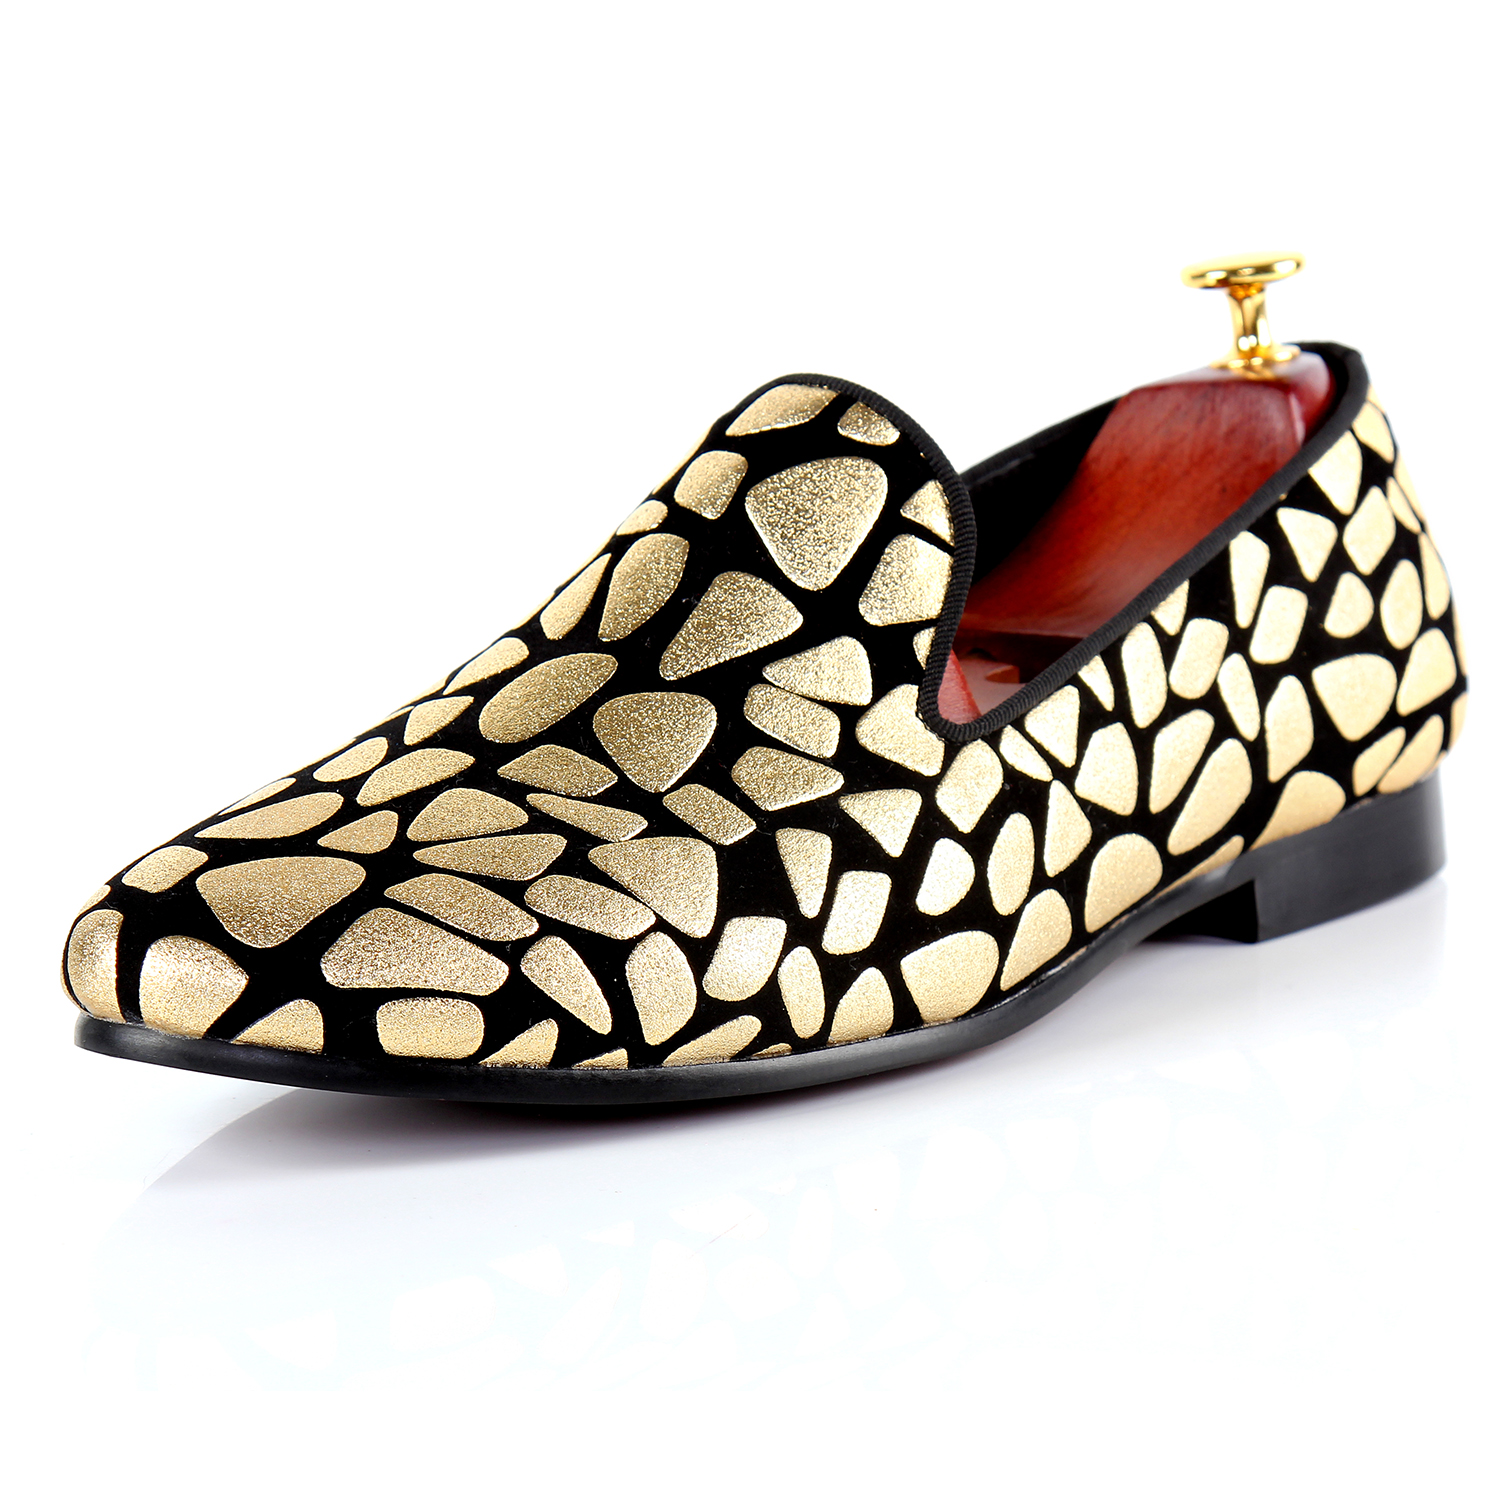 Harpelunde Mens Formal Shoes Gold Print Flat Shoes Hot Sell Wedding Shoes Size 7-9